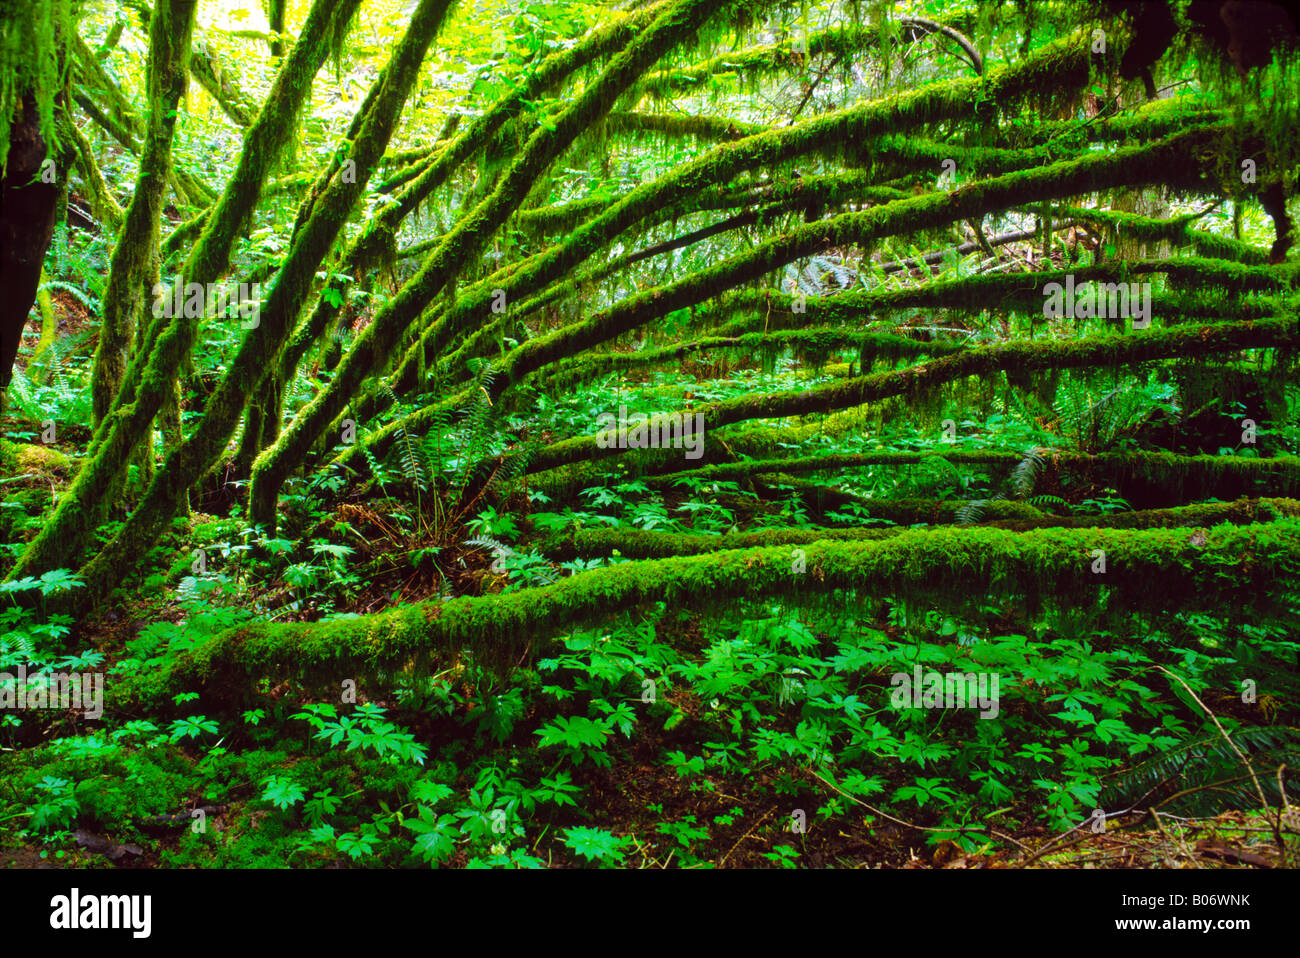 Mossy branches in the summer forms a catherdral-like covering of the forest floor, Tiger Mountain, Washington State, Stock Photo